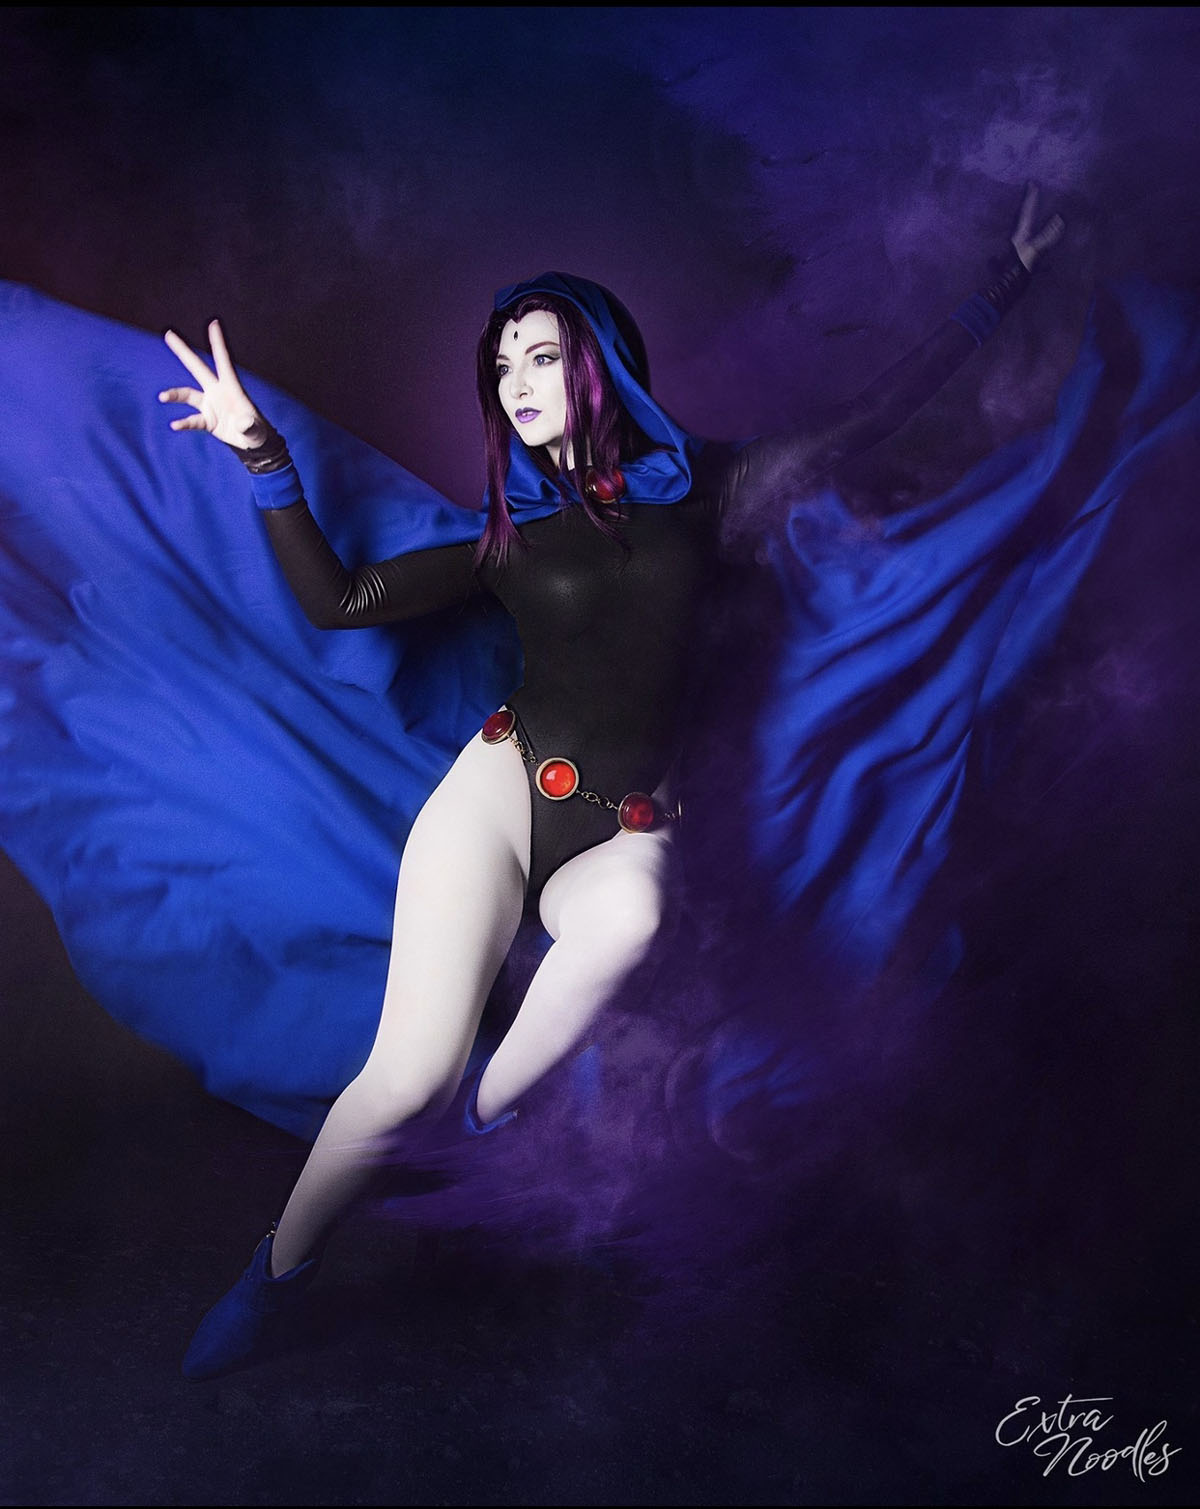 Raven from Teen Titans - photo by Extra Noodles